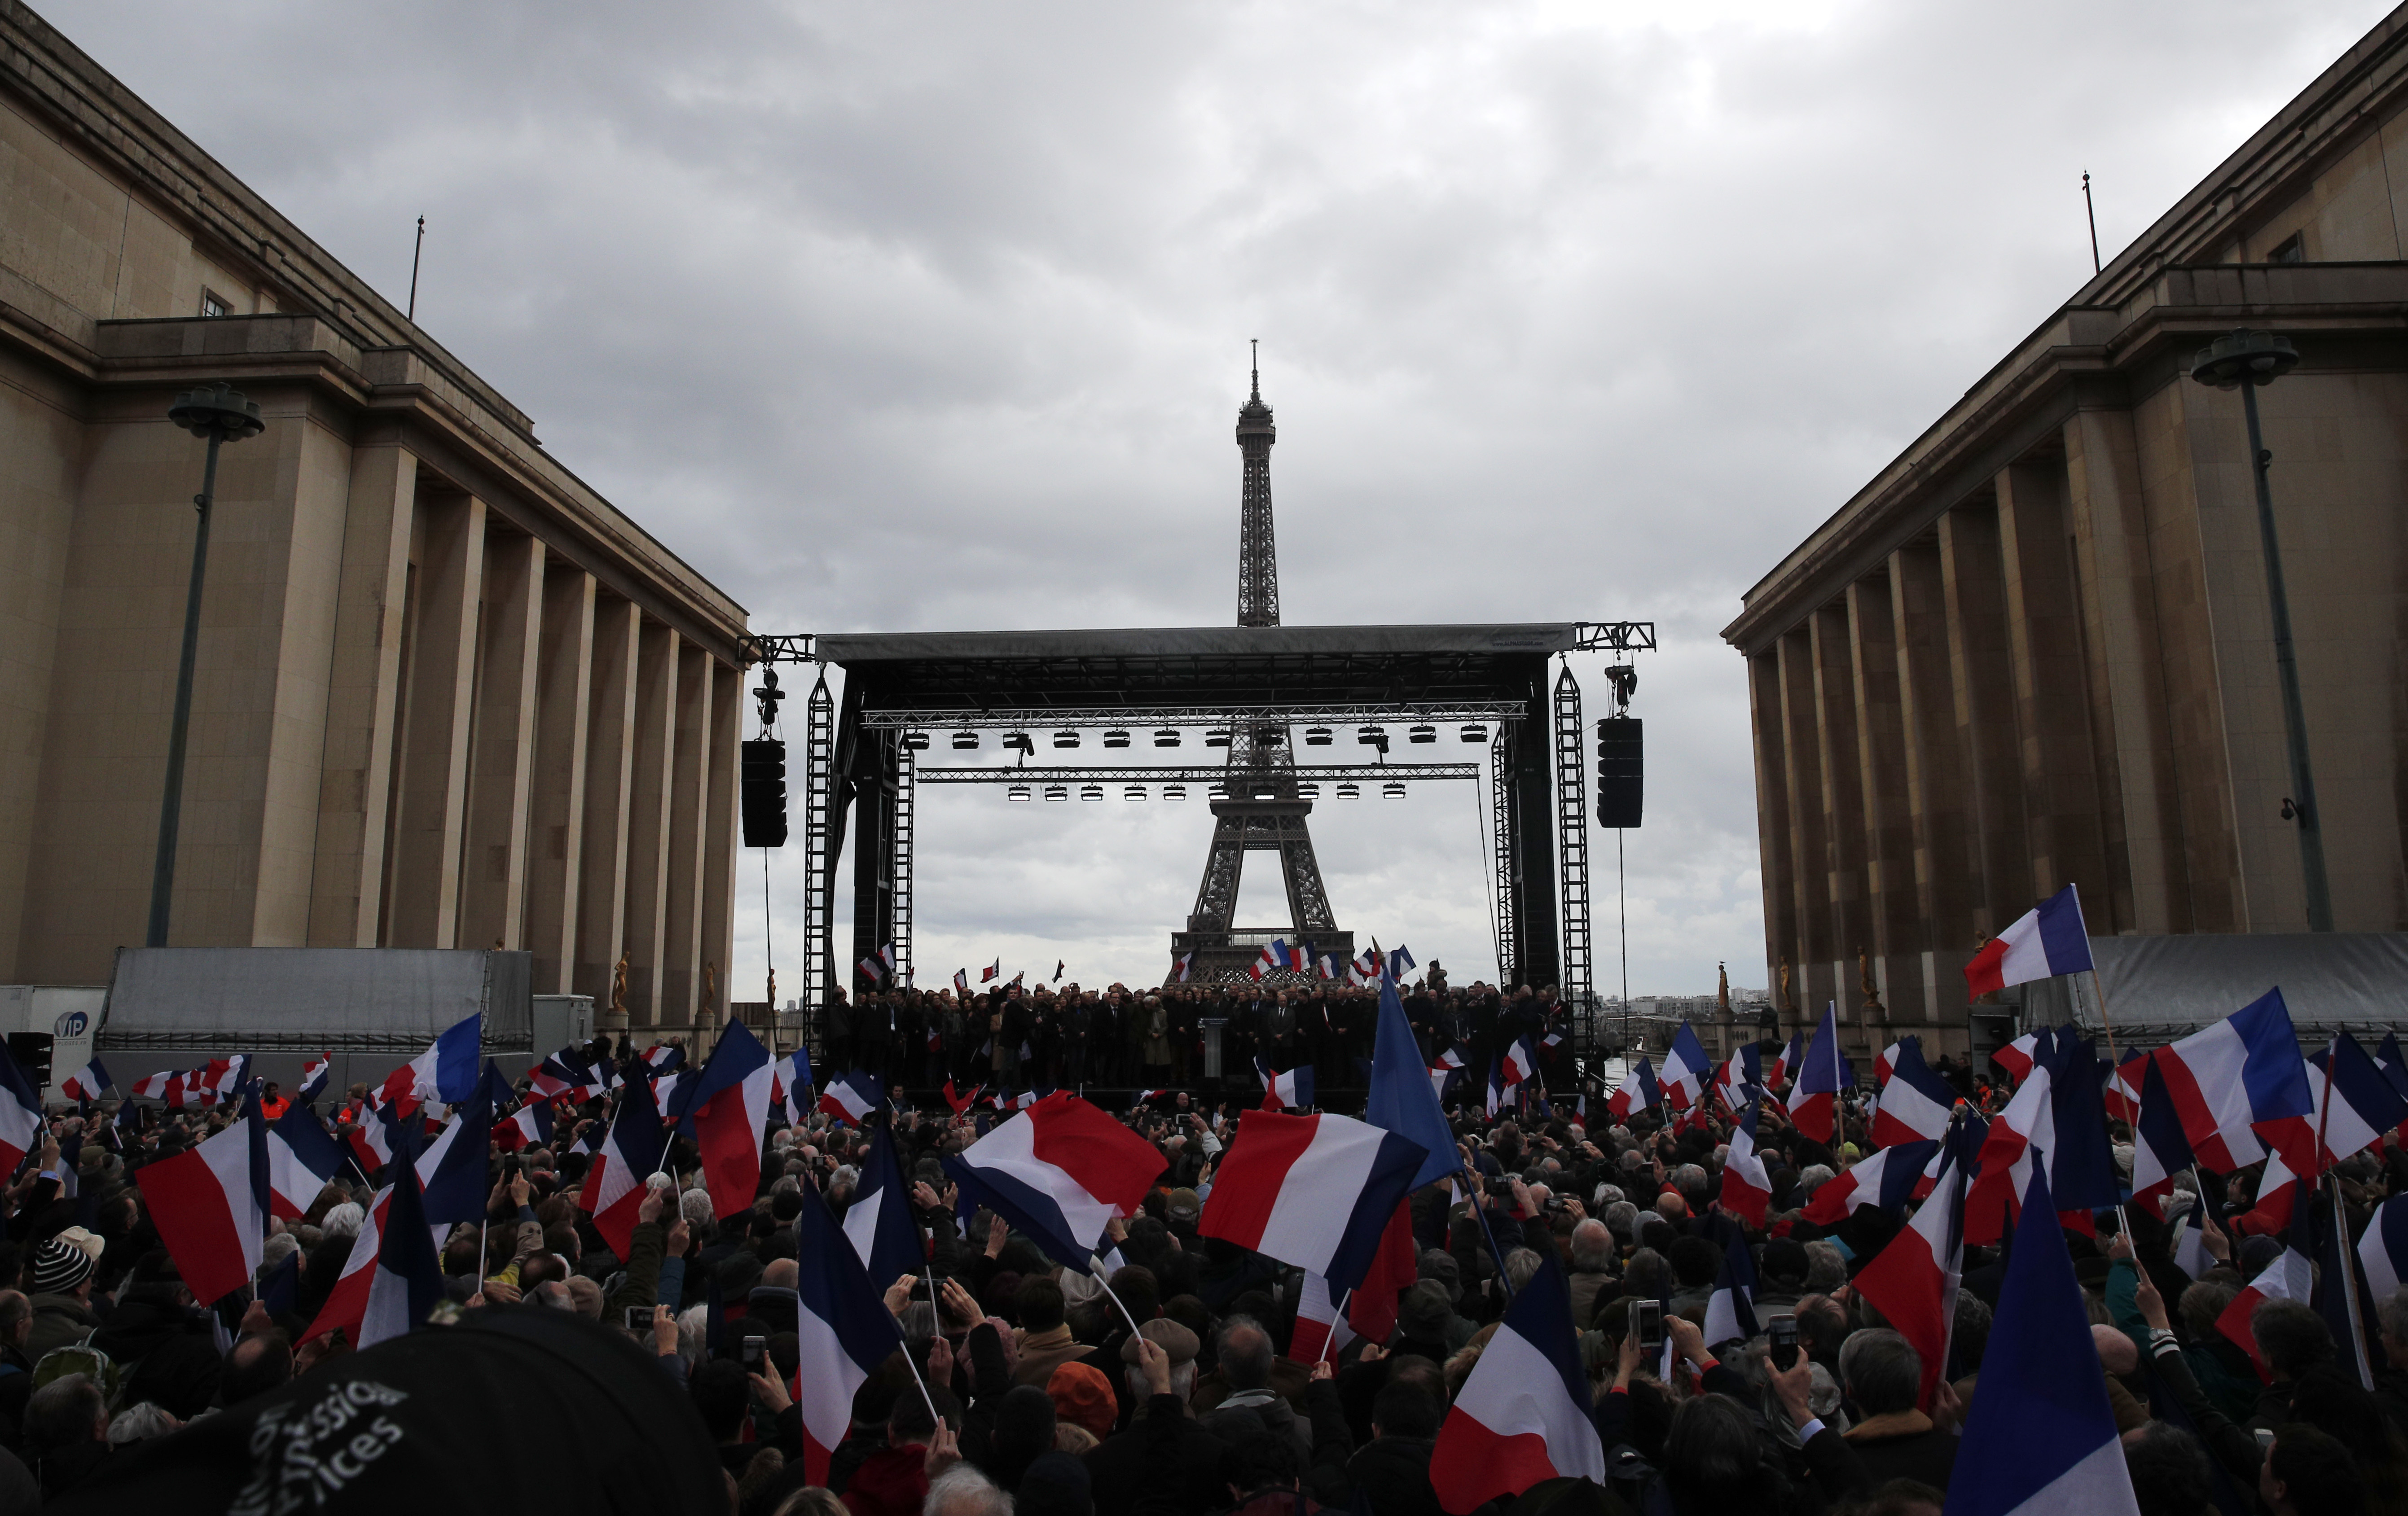 Supporters listen to French conservative presidential candidate Francois Fillon delivering his speech during a rally in Paris on March 5, 2017. (AP Photo/Christophe Ena)